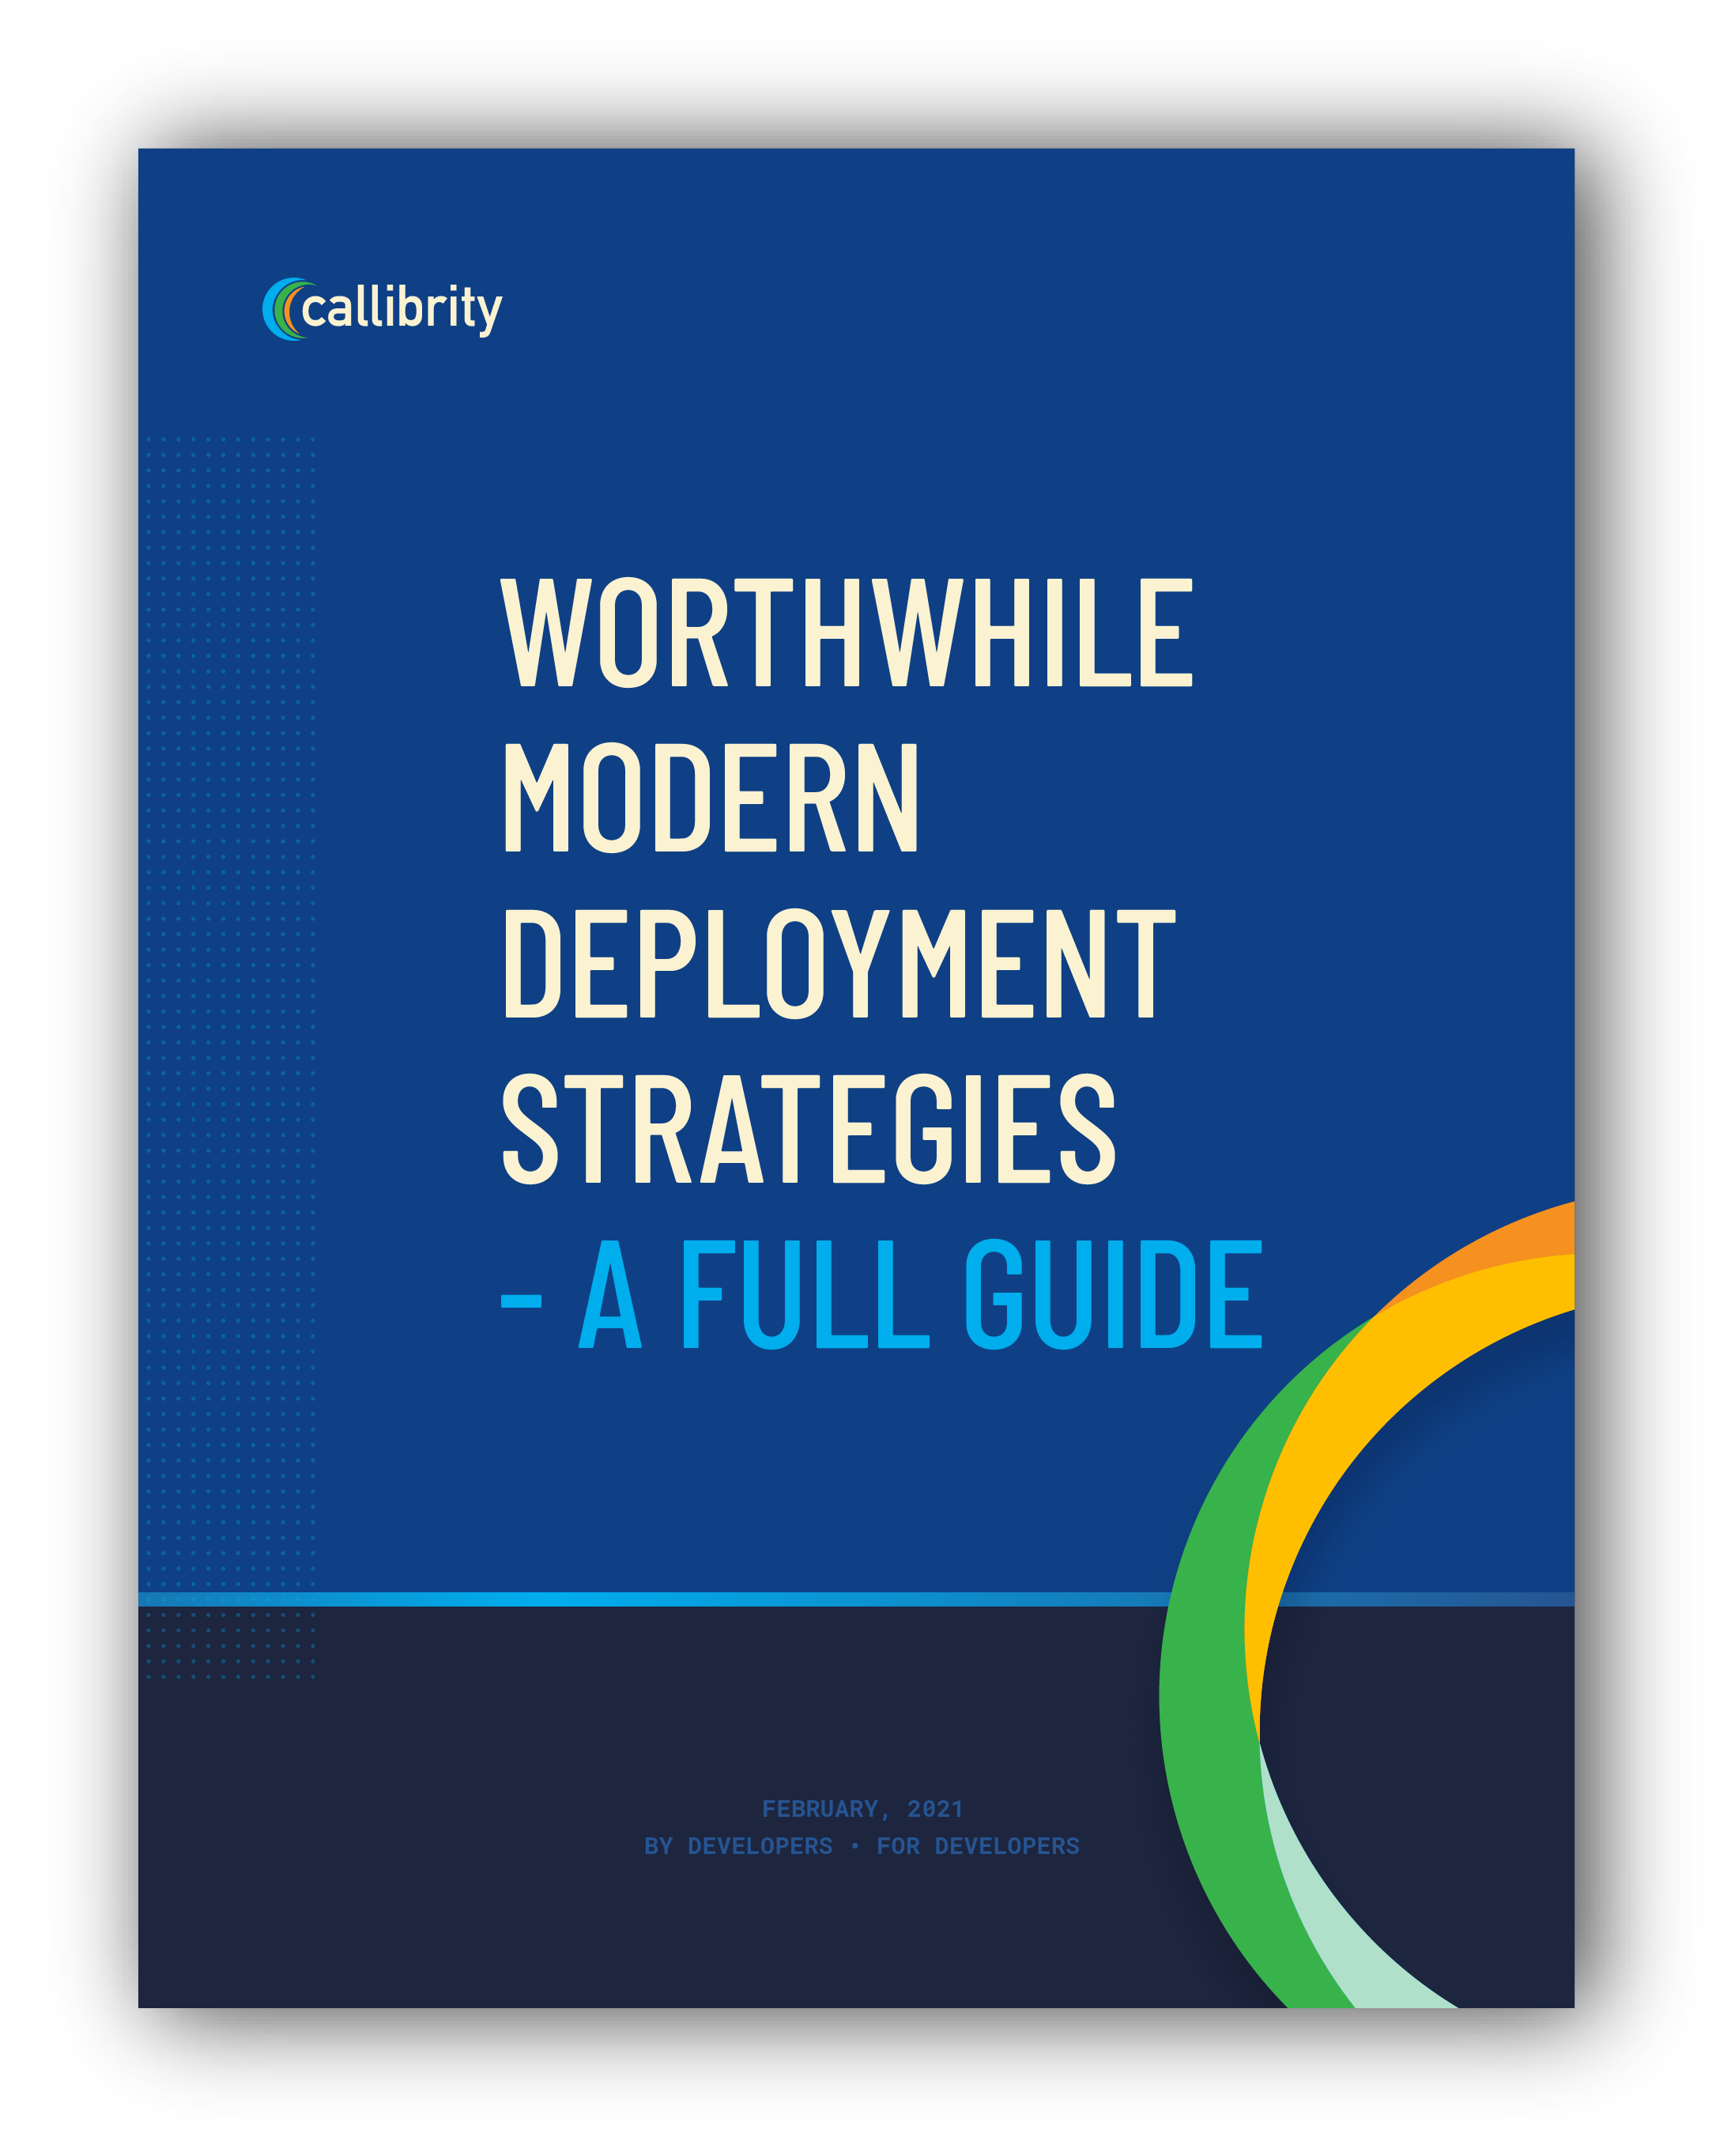 Worthwhile Modern Deployment Strategies - A Full Guide